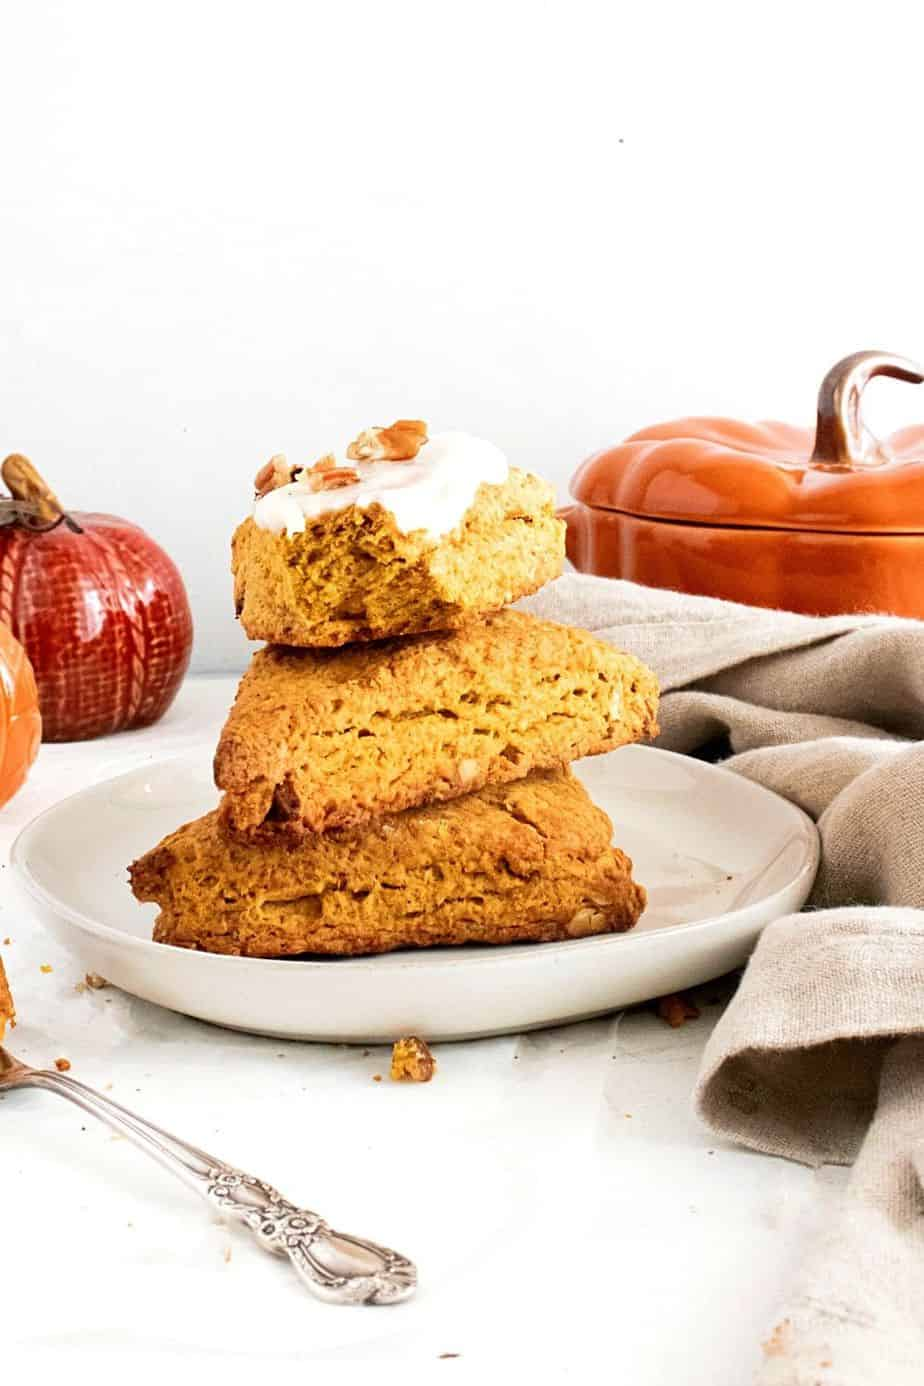 Pumpkin season calls for an easy fall baking recipe. Prepare the perfect fall-flavored Pumpkin Brown Butter Scones using simple, fresh, and flavorful ingredients. These scones are an excellent baked treat to eat for breakfast with coffee or tea. These scones are the perfect fall treat - Super flaky and perfectly spiced. Try this delicious recipe for classic pumpkin scones!